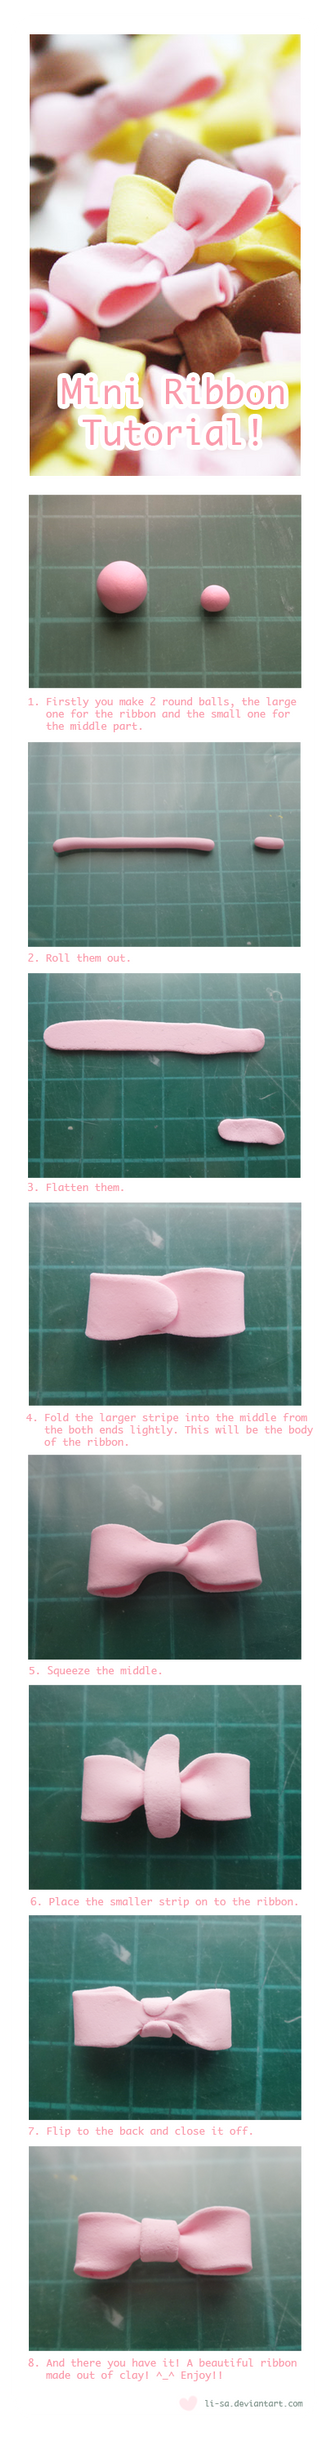 Mini Ribbon Tutorial by li-sa